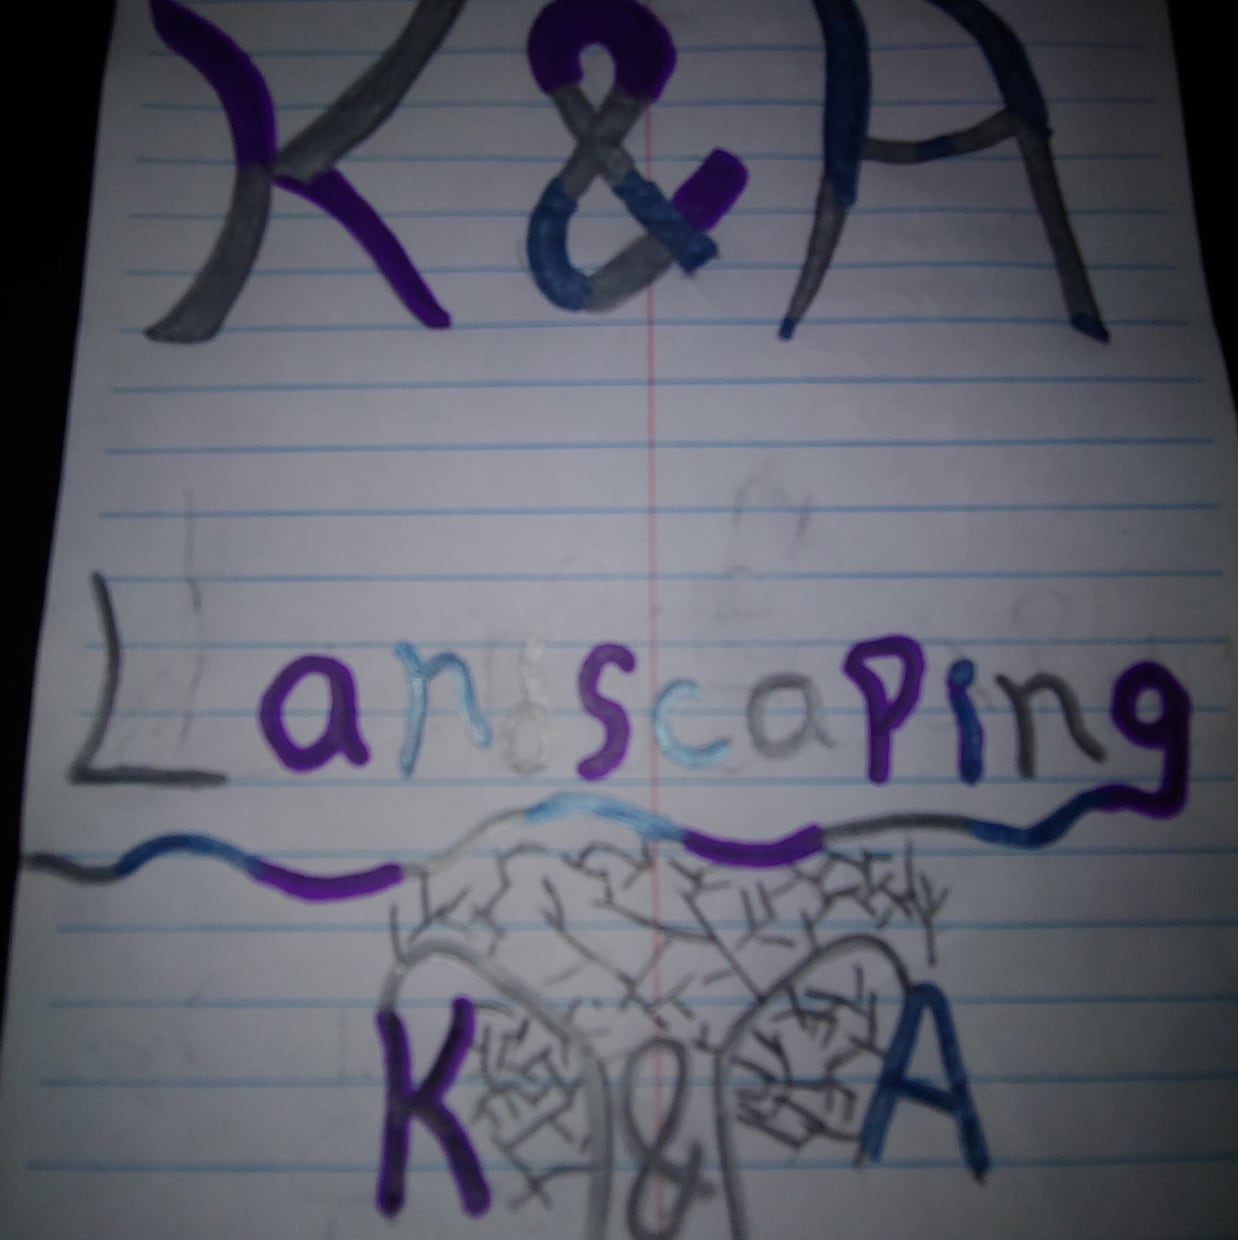 K&A Landscaping